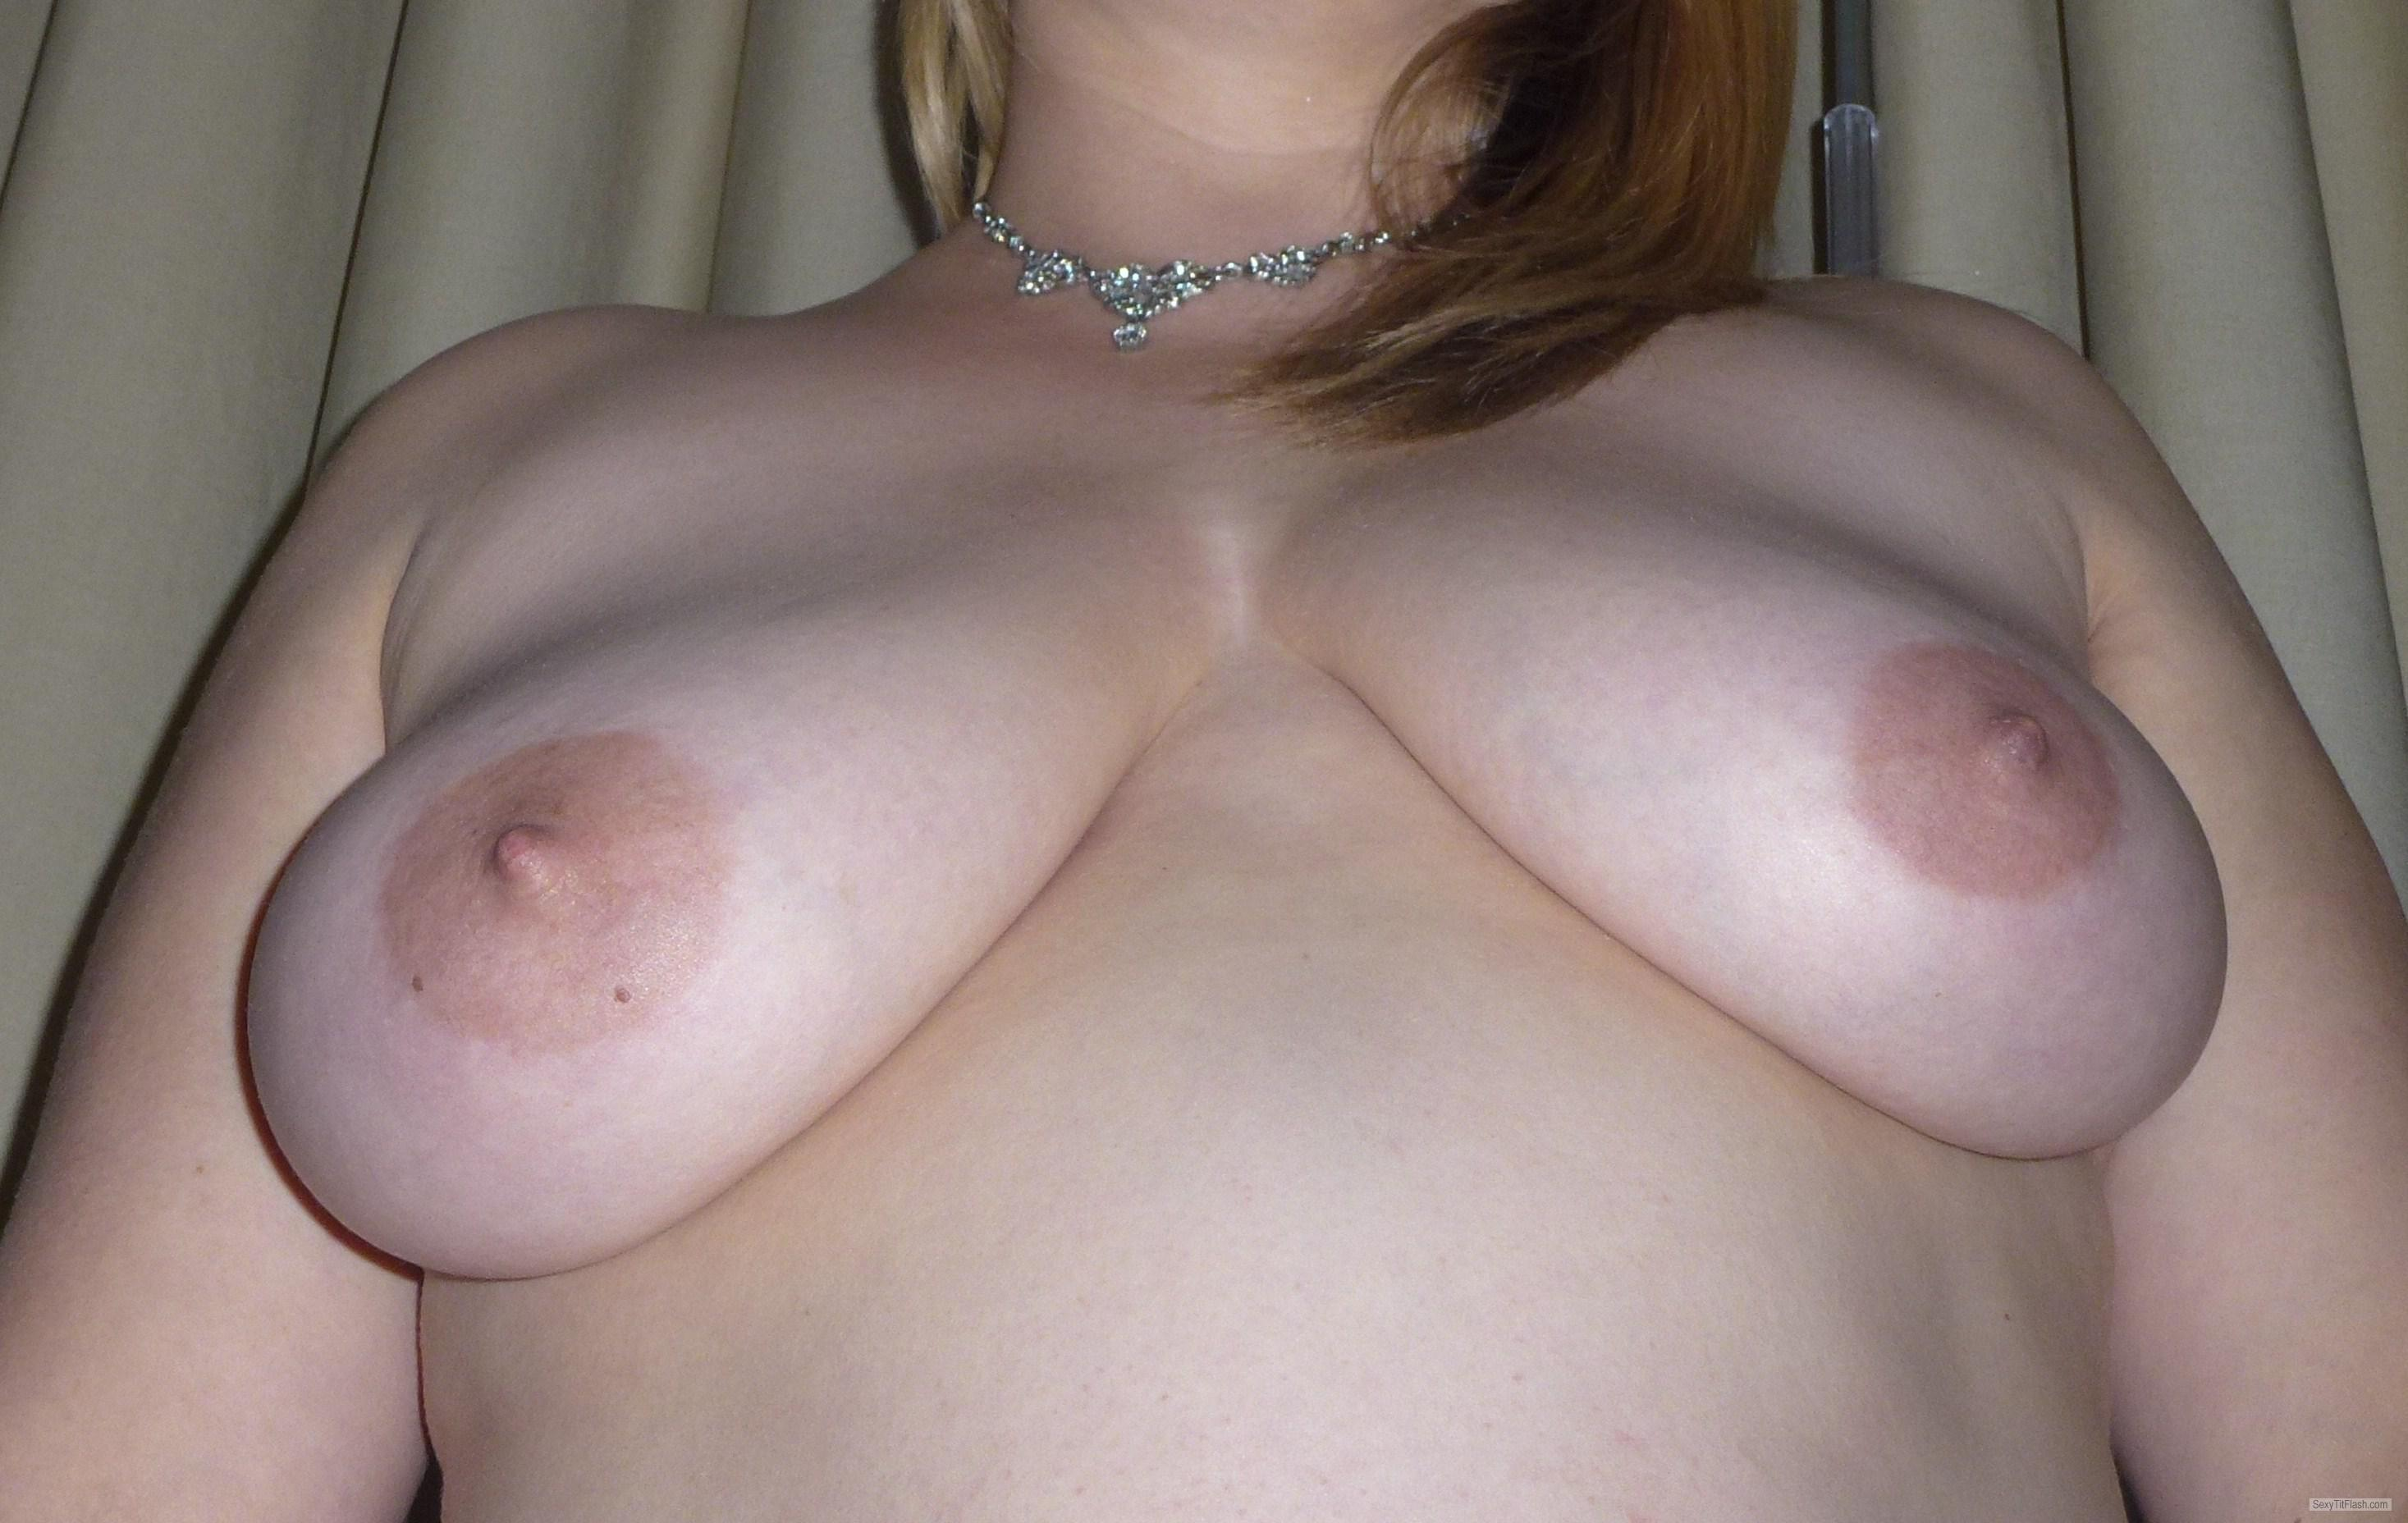 Tit Flash: Wife's Medium Tits - BP from United Kingdom